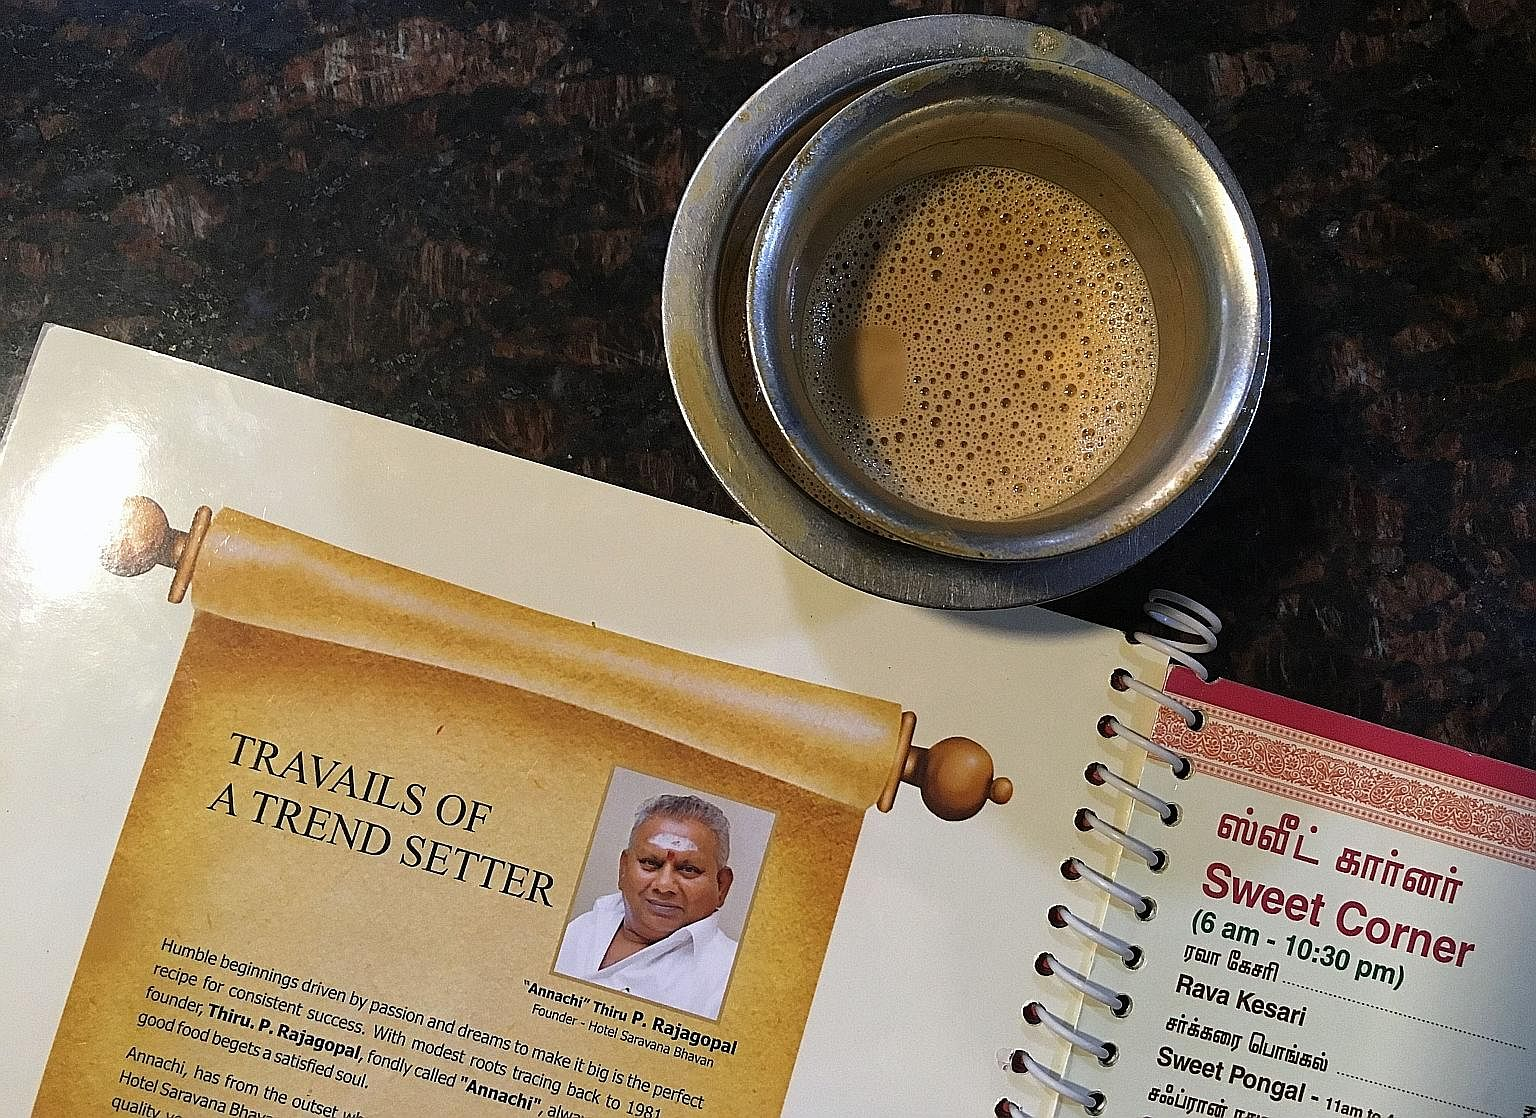 P. Rajagopal was the founder of the Saravana Bhavan food chain, which has a branch here, opposite Mustafa Centre in Little India. Sources close to him said his addiction to astrology led to the murder of one of his employees, whose wife he wanted to